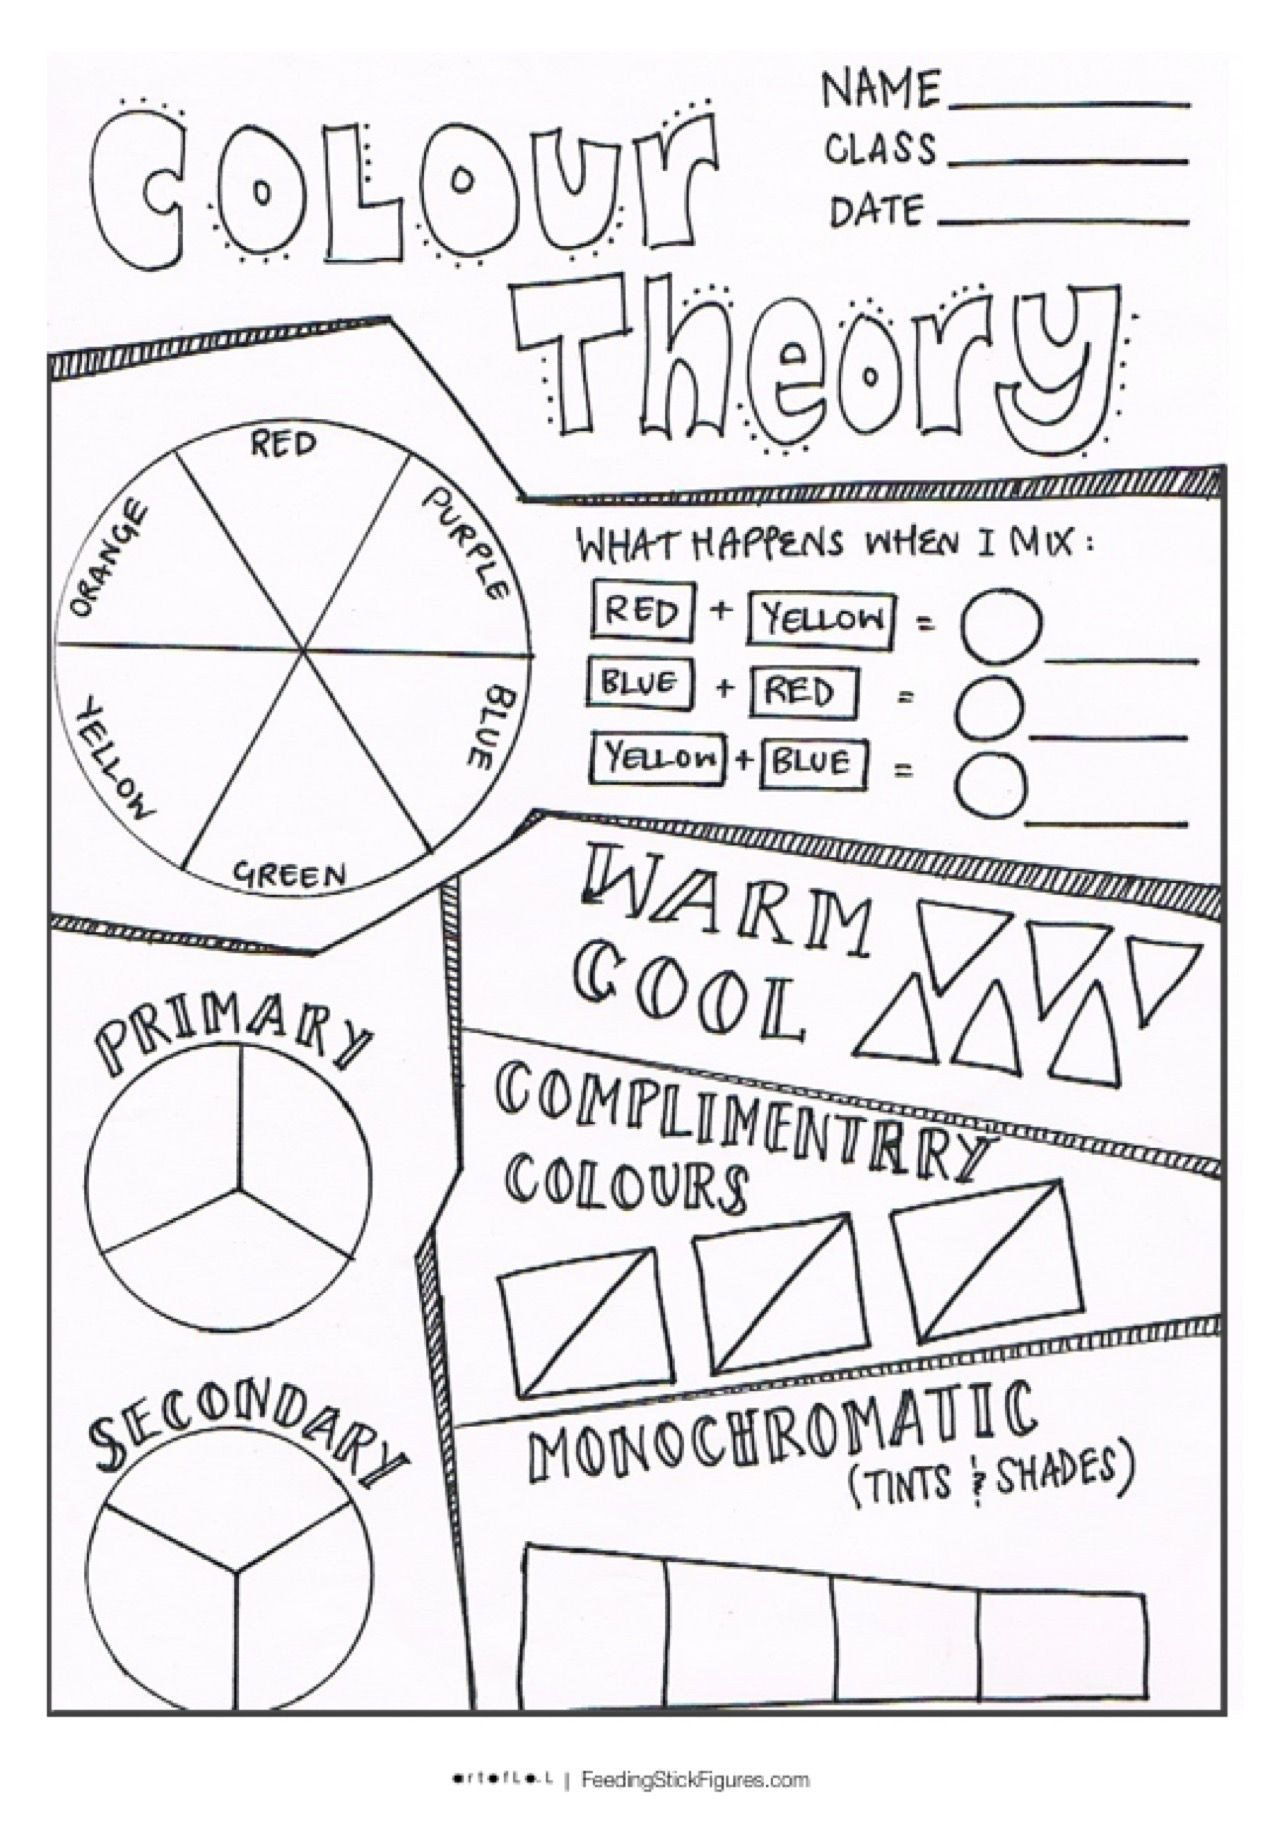 Color Wheel Worksheet for Elementary Intro to Colour theory Sheet Feedingstickfigures